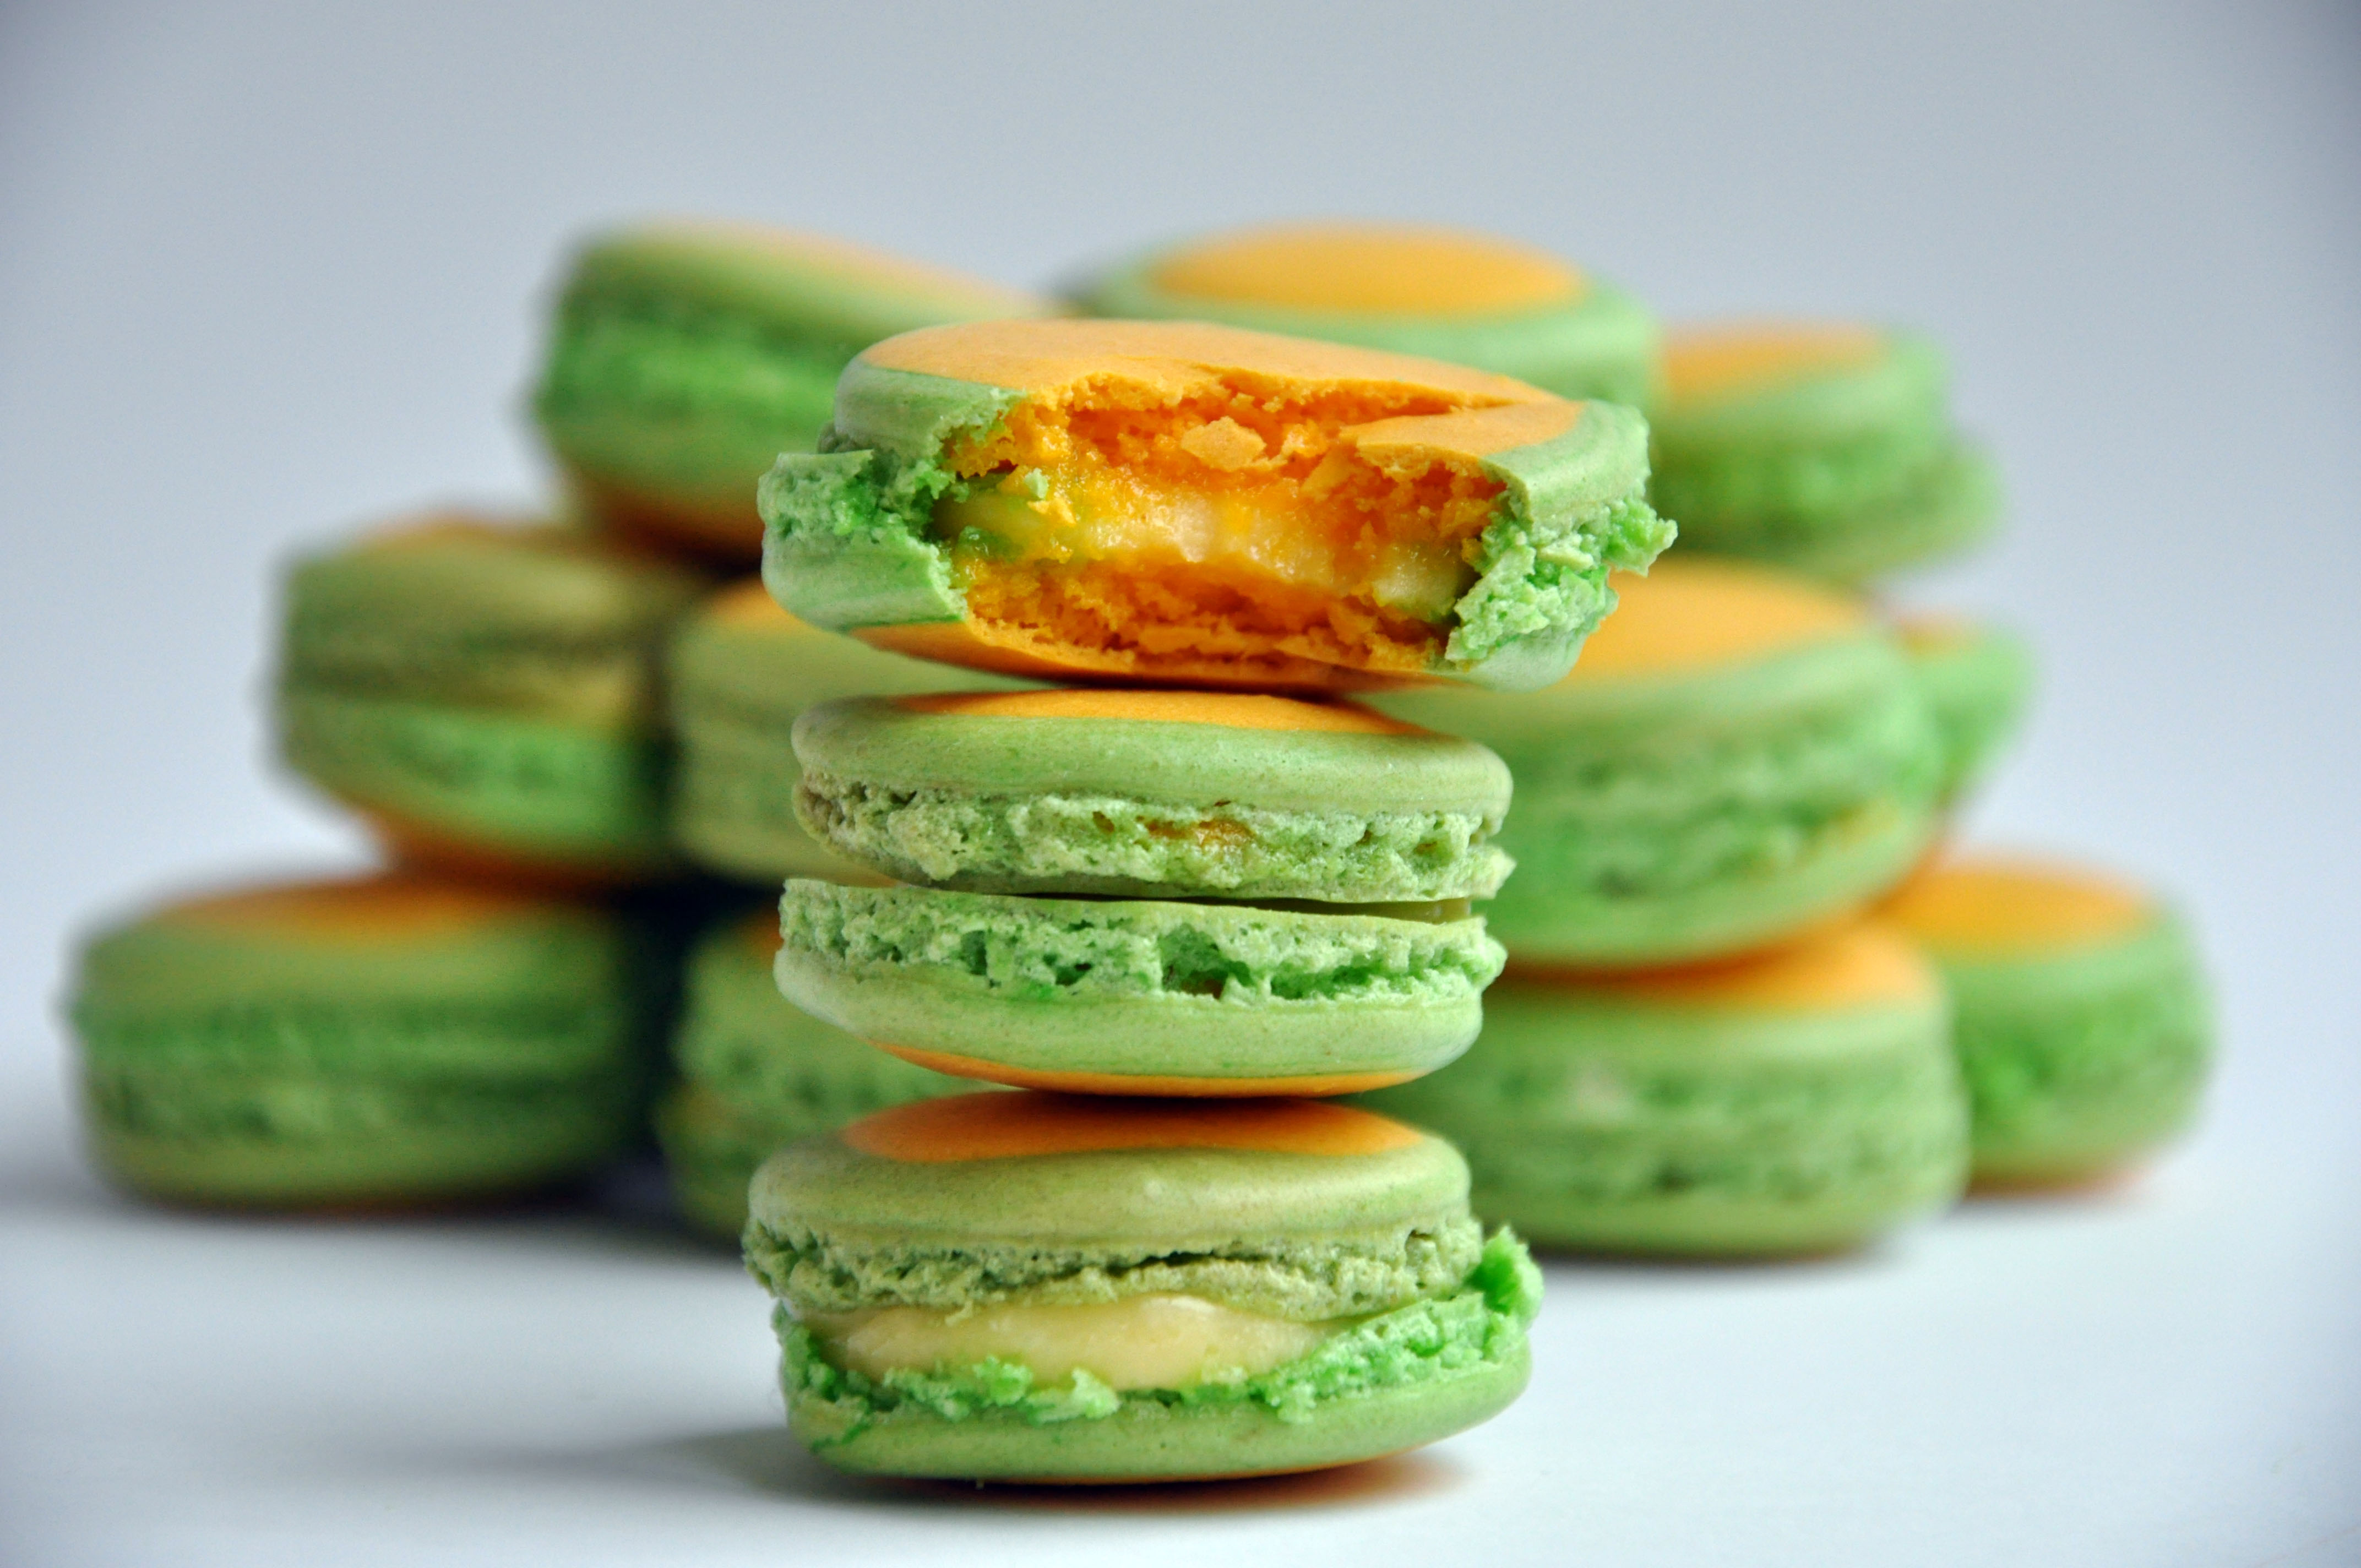 ... Bakers' October Challenge – Lemon Lime Macarons   Trissalicious